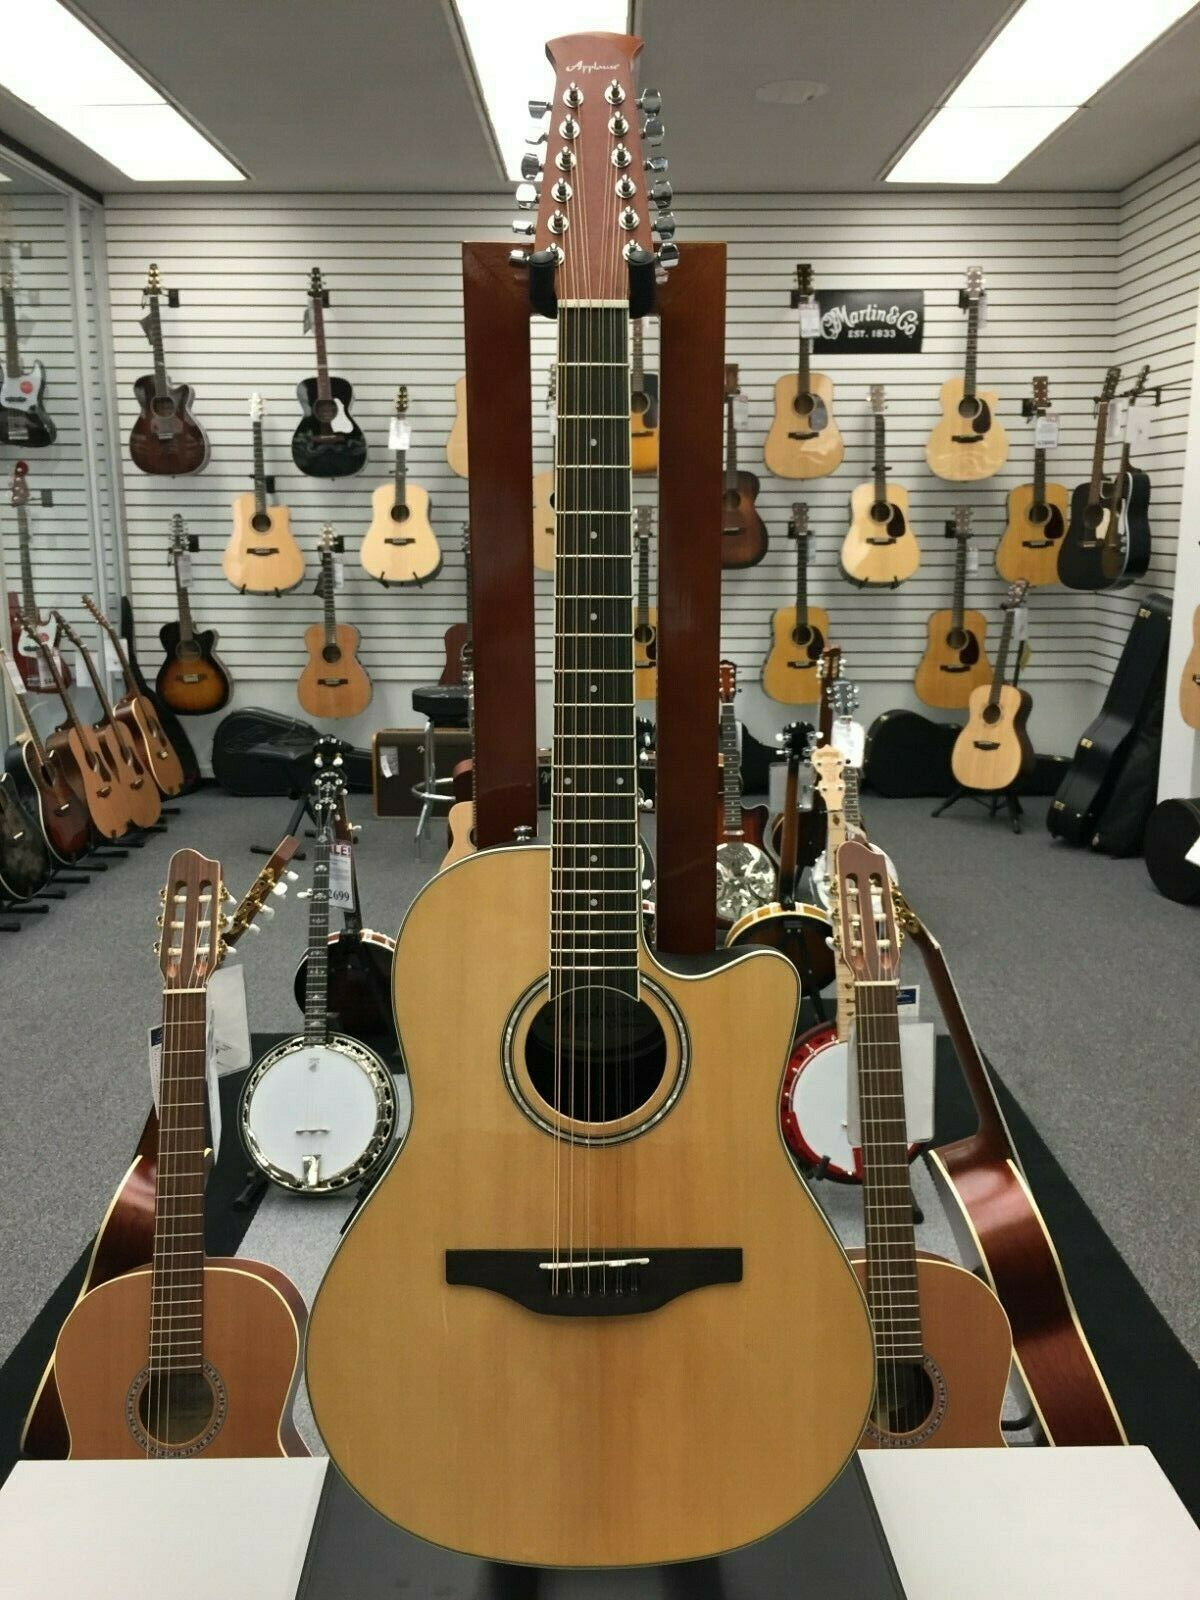 Applause Standard 12 String Acoustic Natural Spruce